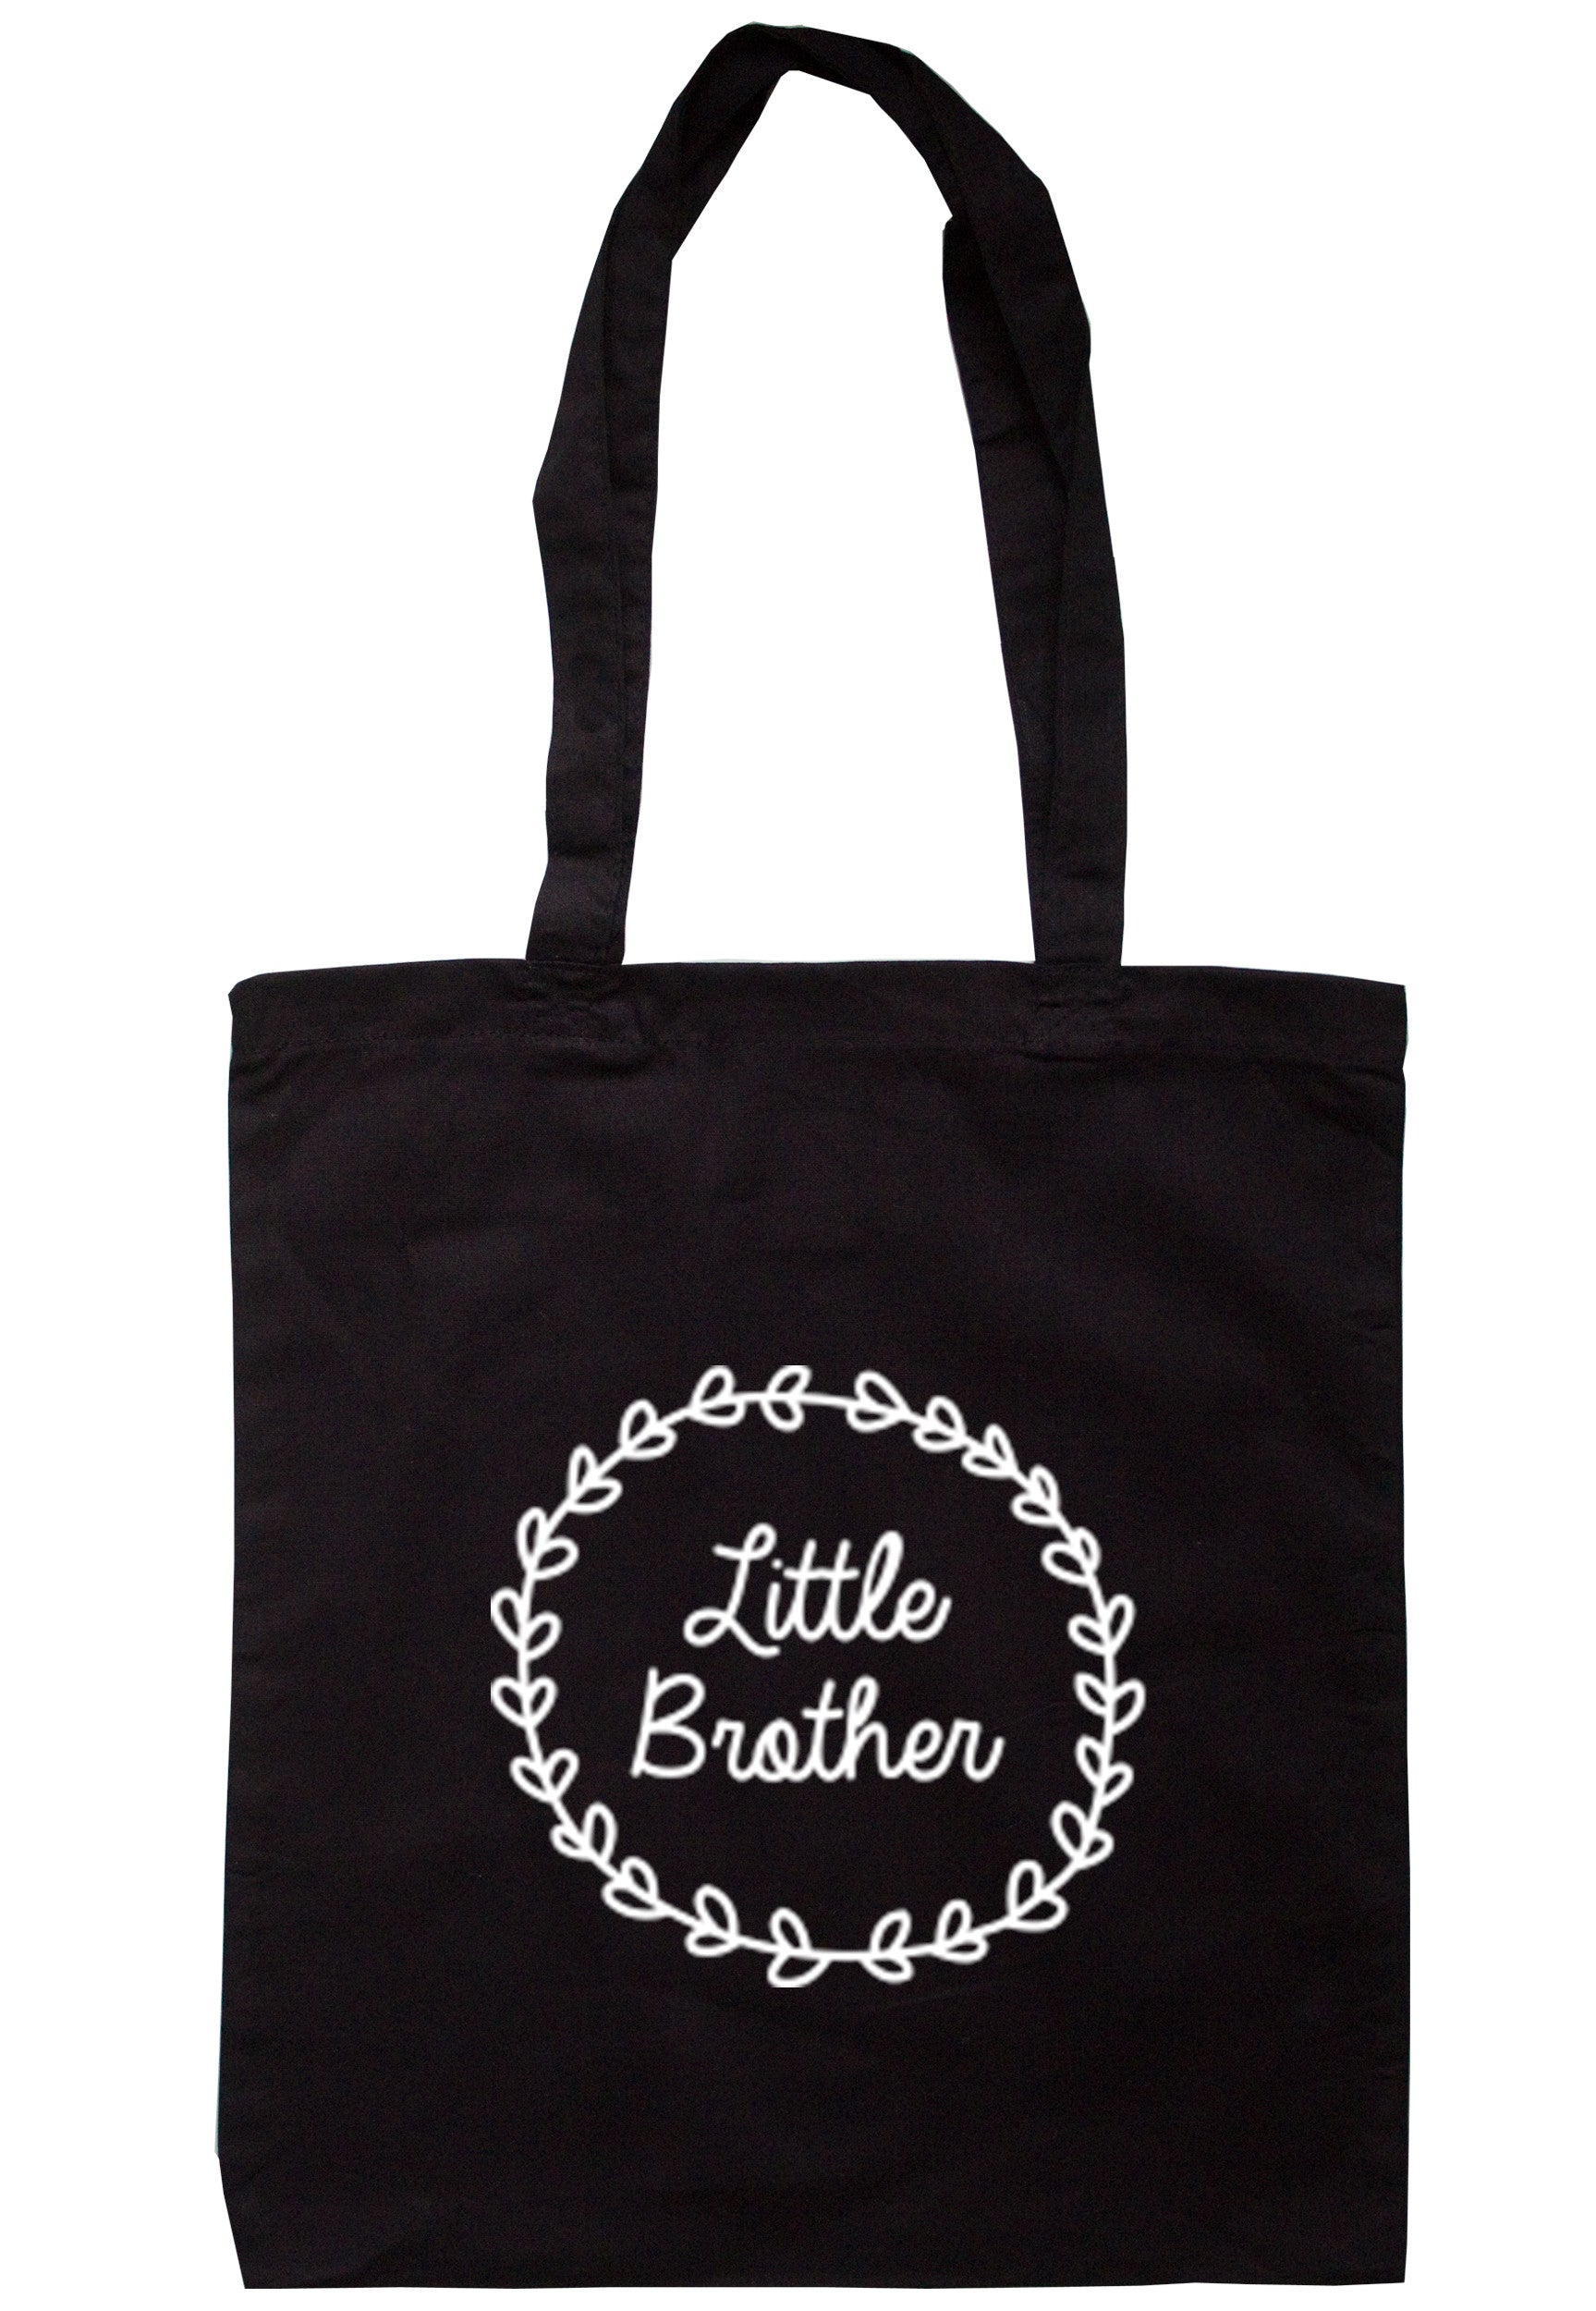 Little Brother Tote Bag TB0170 - Illustrated Identity Ltd.